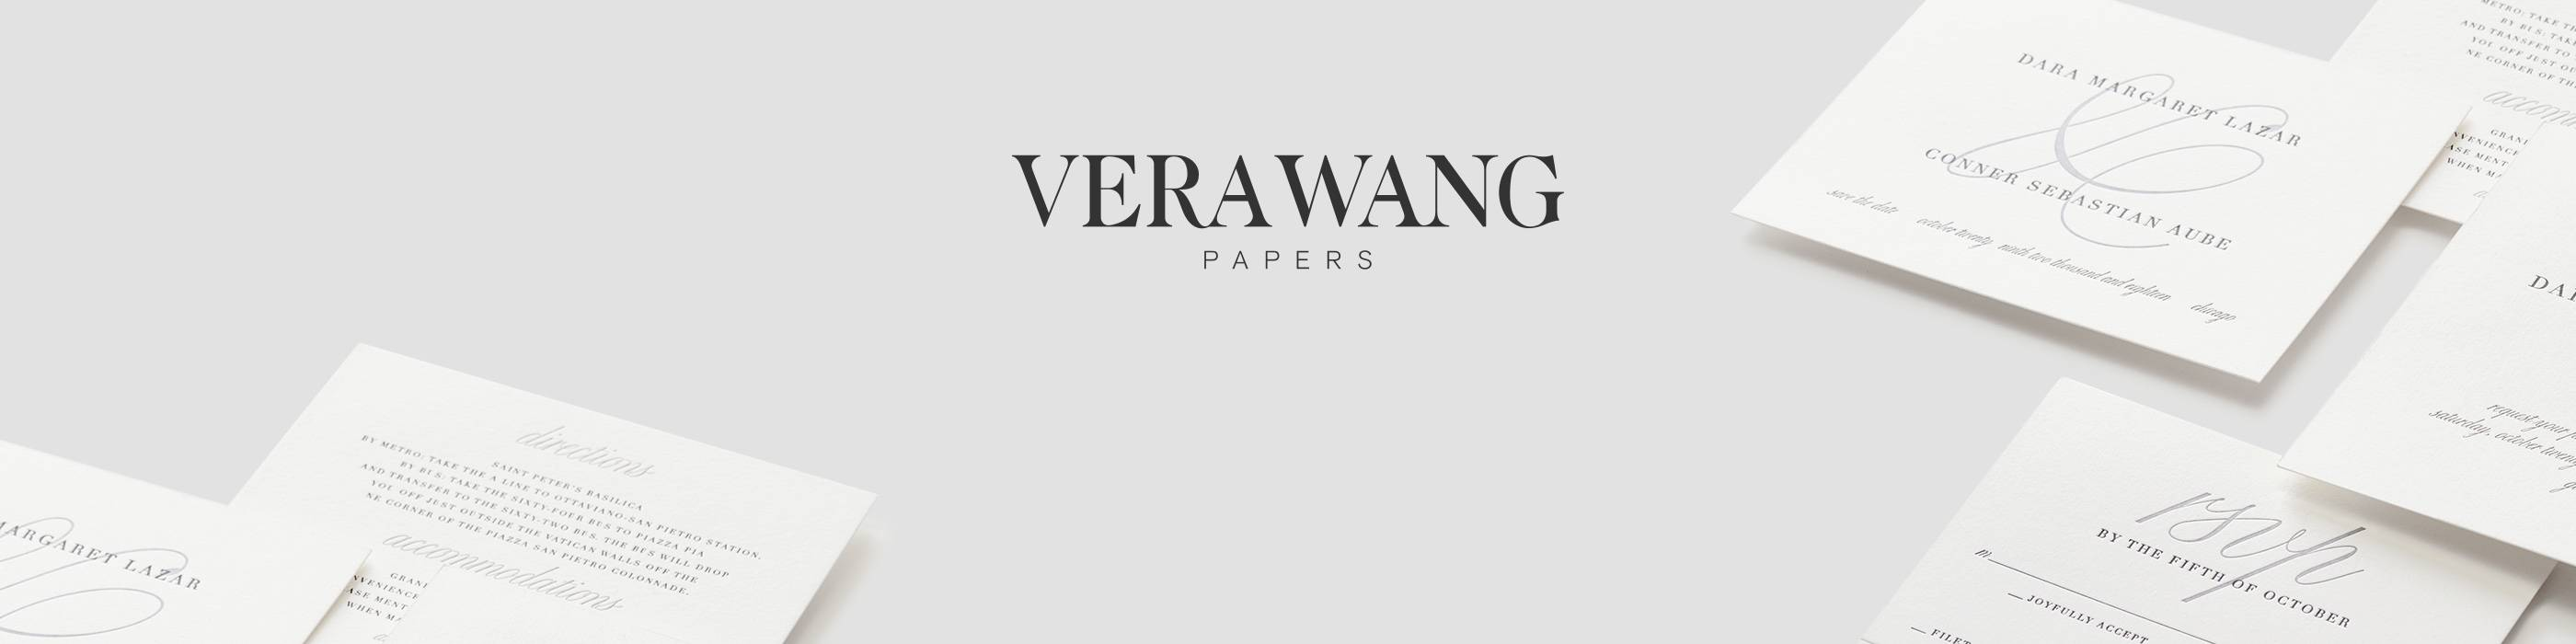 Vera Wang invitations and stationery - online at Paperless Post